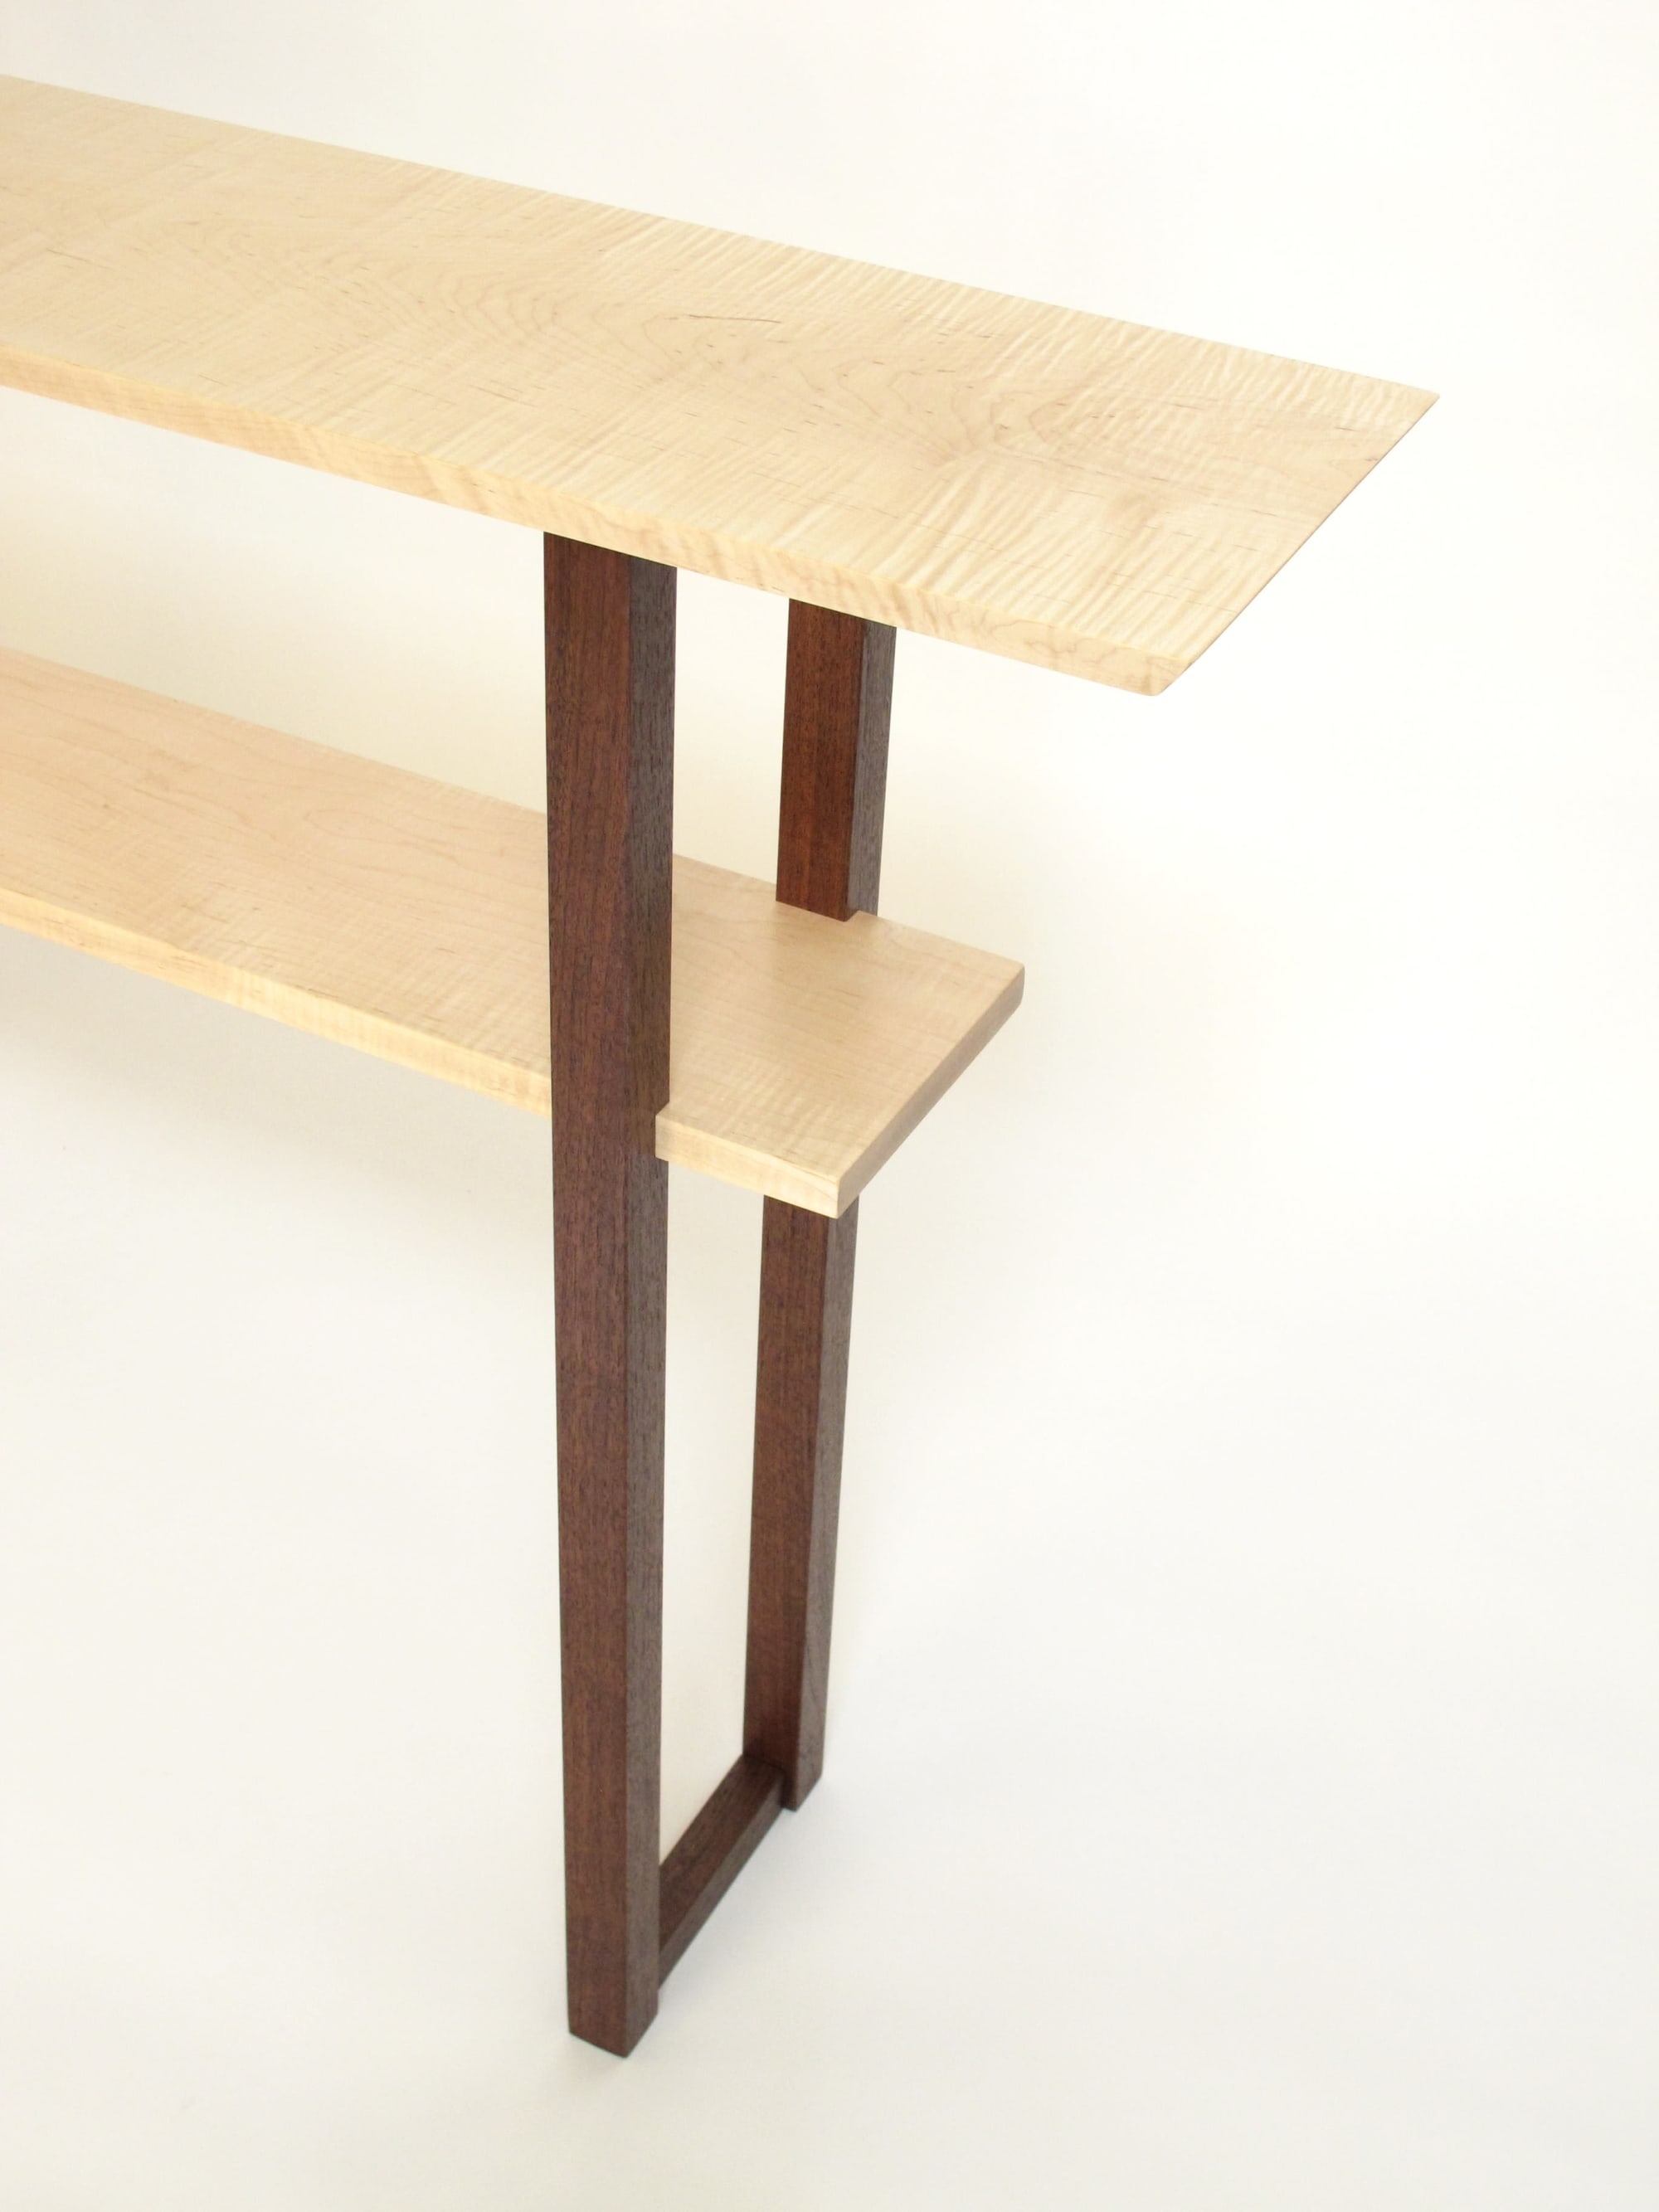 Tables by Mokuzai Furniture seen at Private Residence, Newburyport - Designer Console Table in Tiger Maple and Walnut